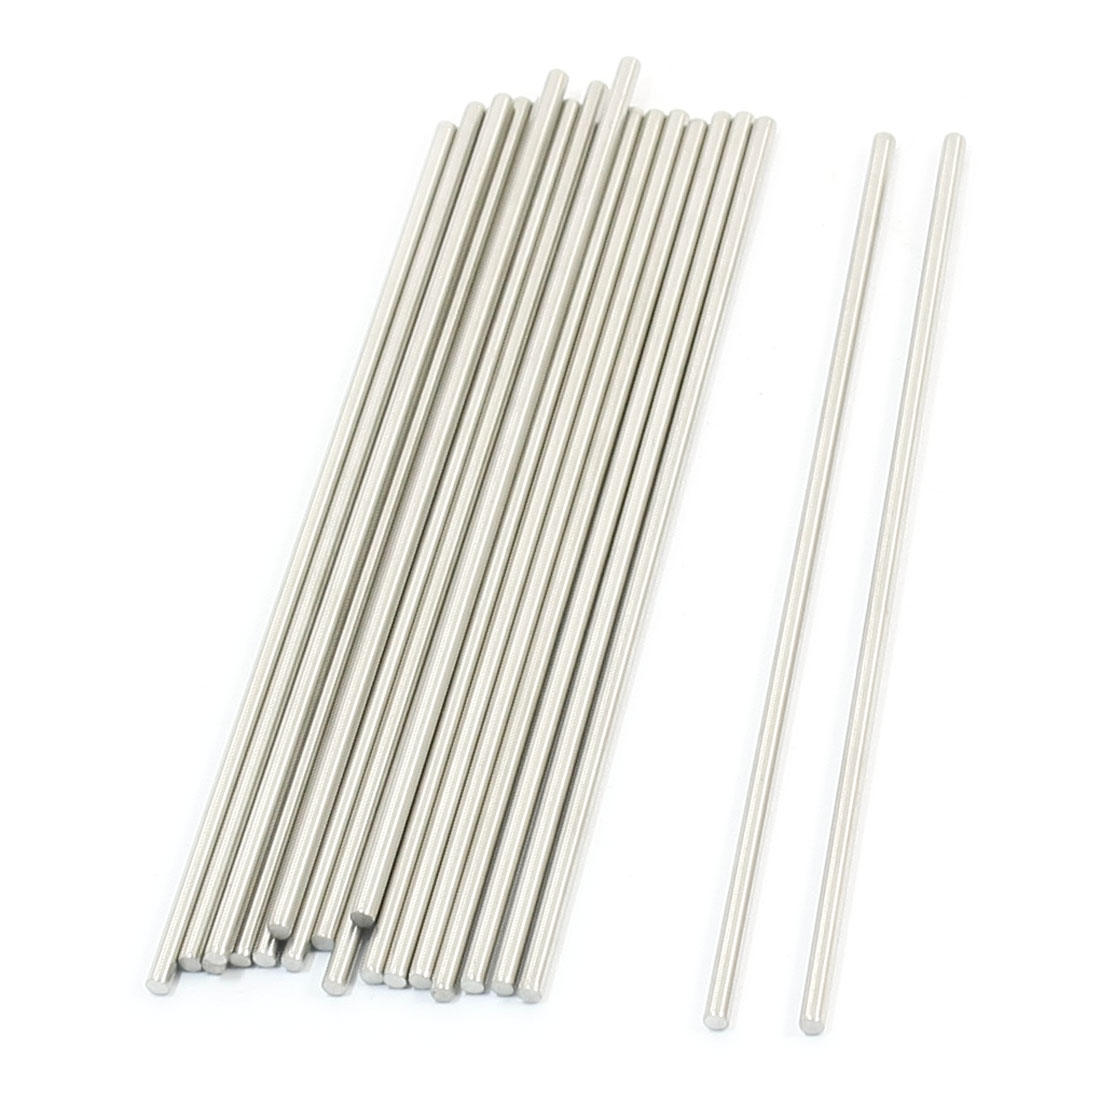 20 Pcs RC Toy Car Model Part Stainless Steel Round Rods Axles 3mm x 140mm